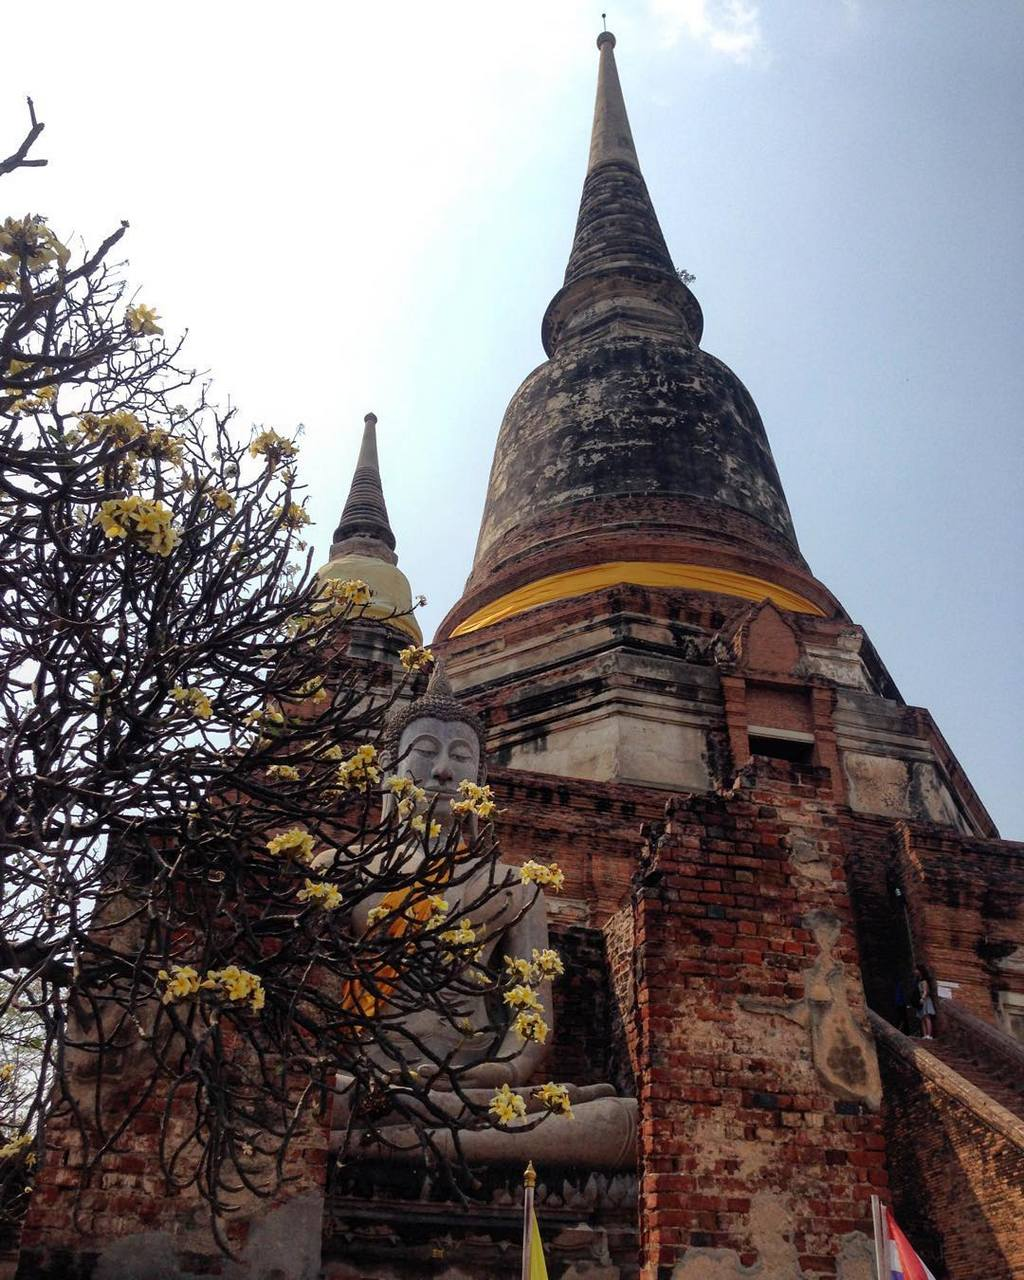 Ayutthaya thai history buddha old temples travel tip tourist attractions where to go